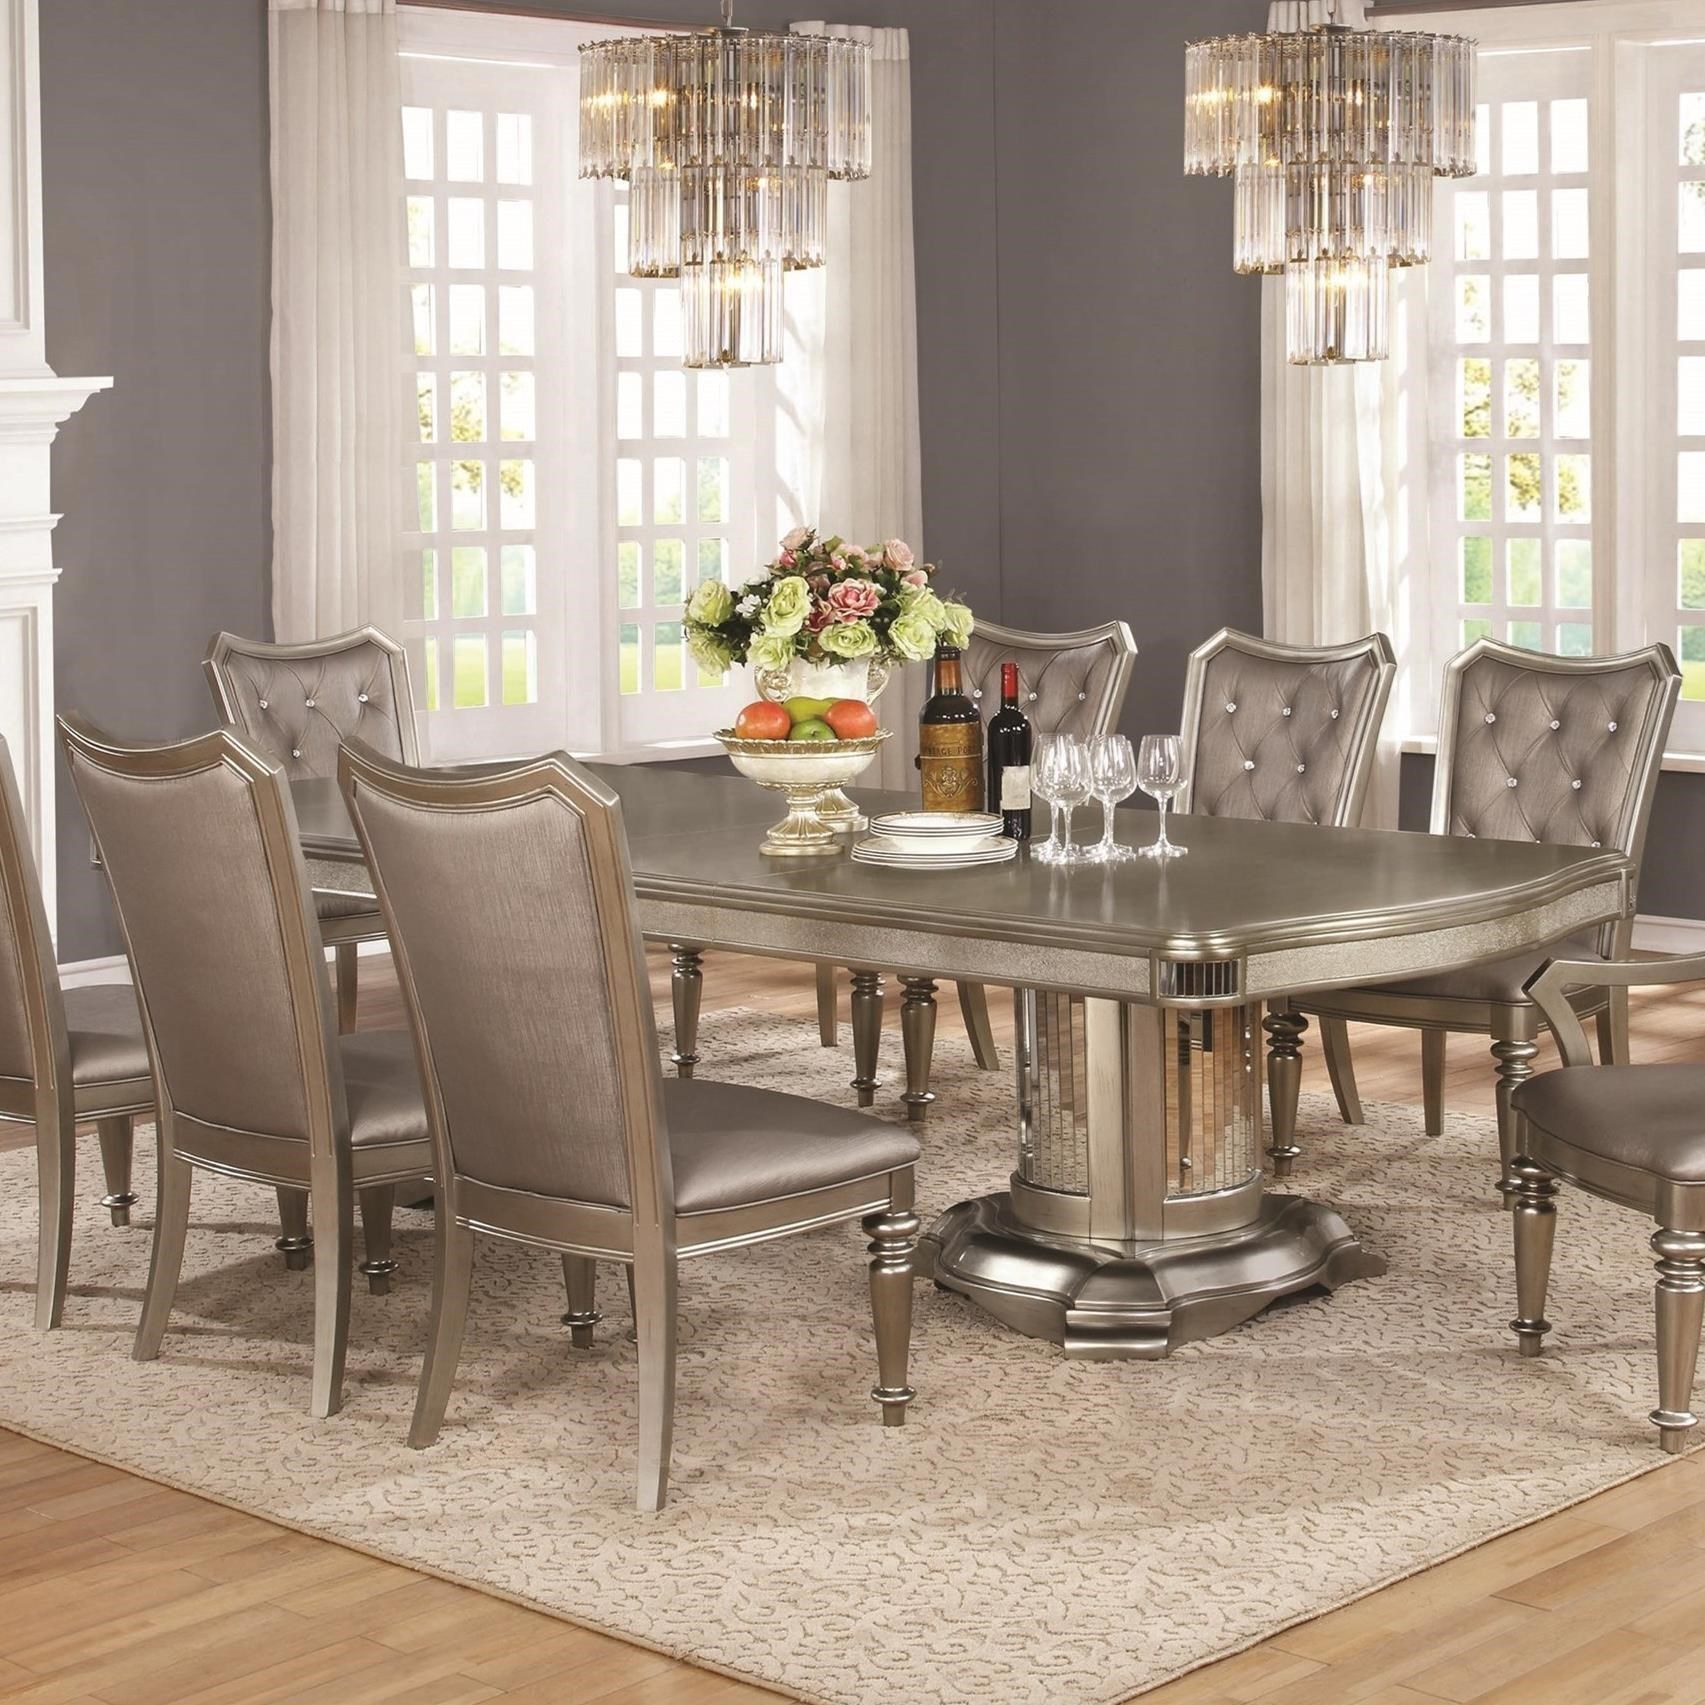 Value City Furniture Dining TableGlorious Value City